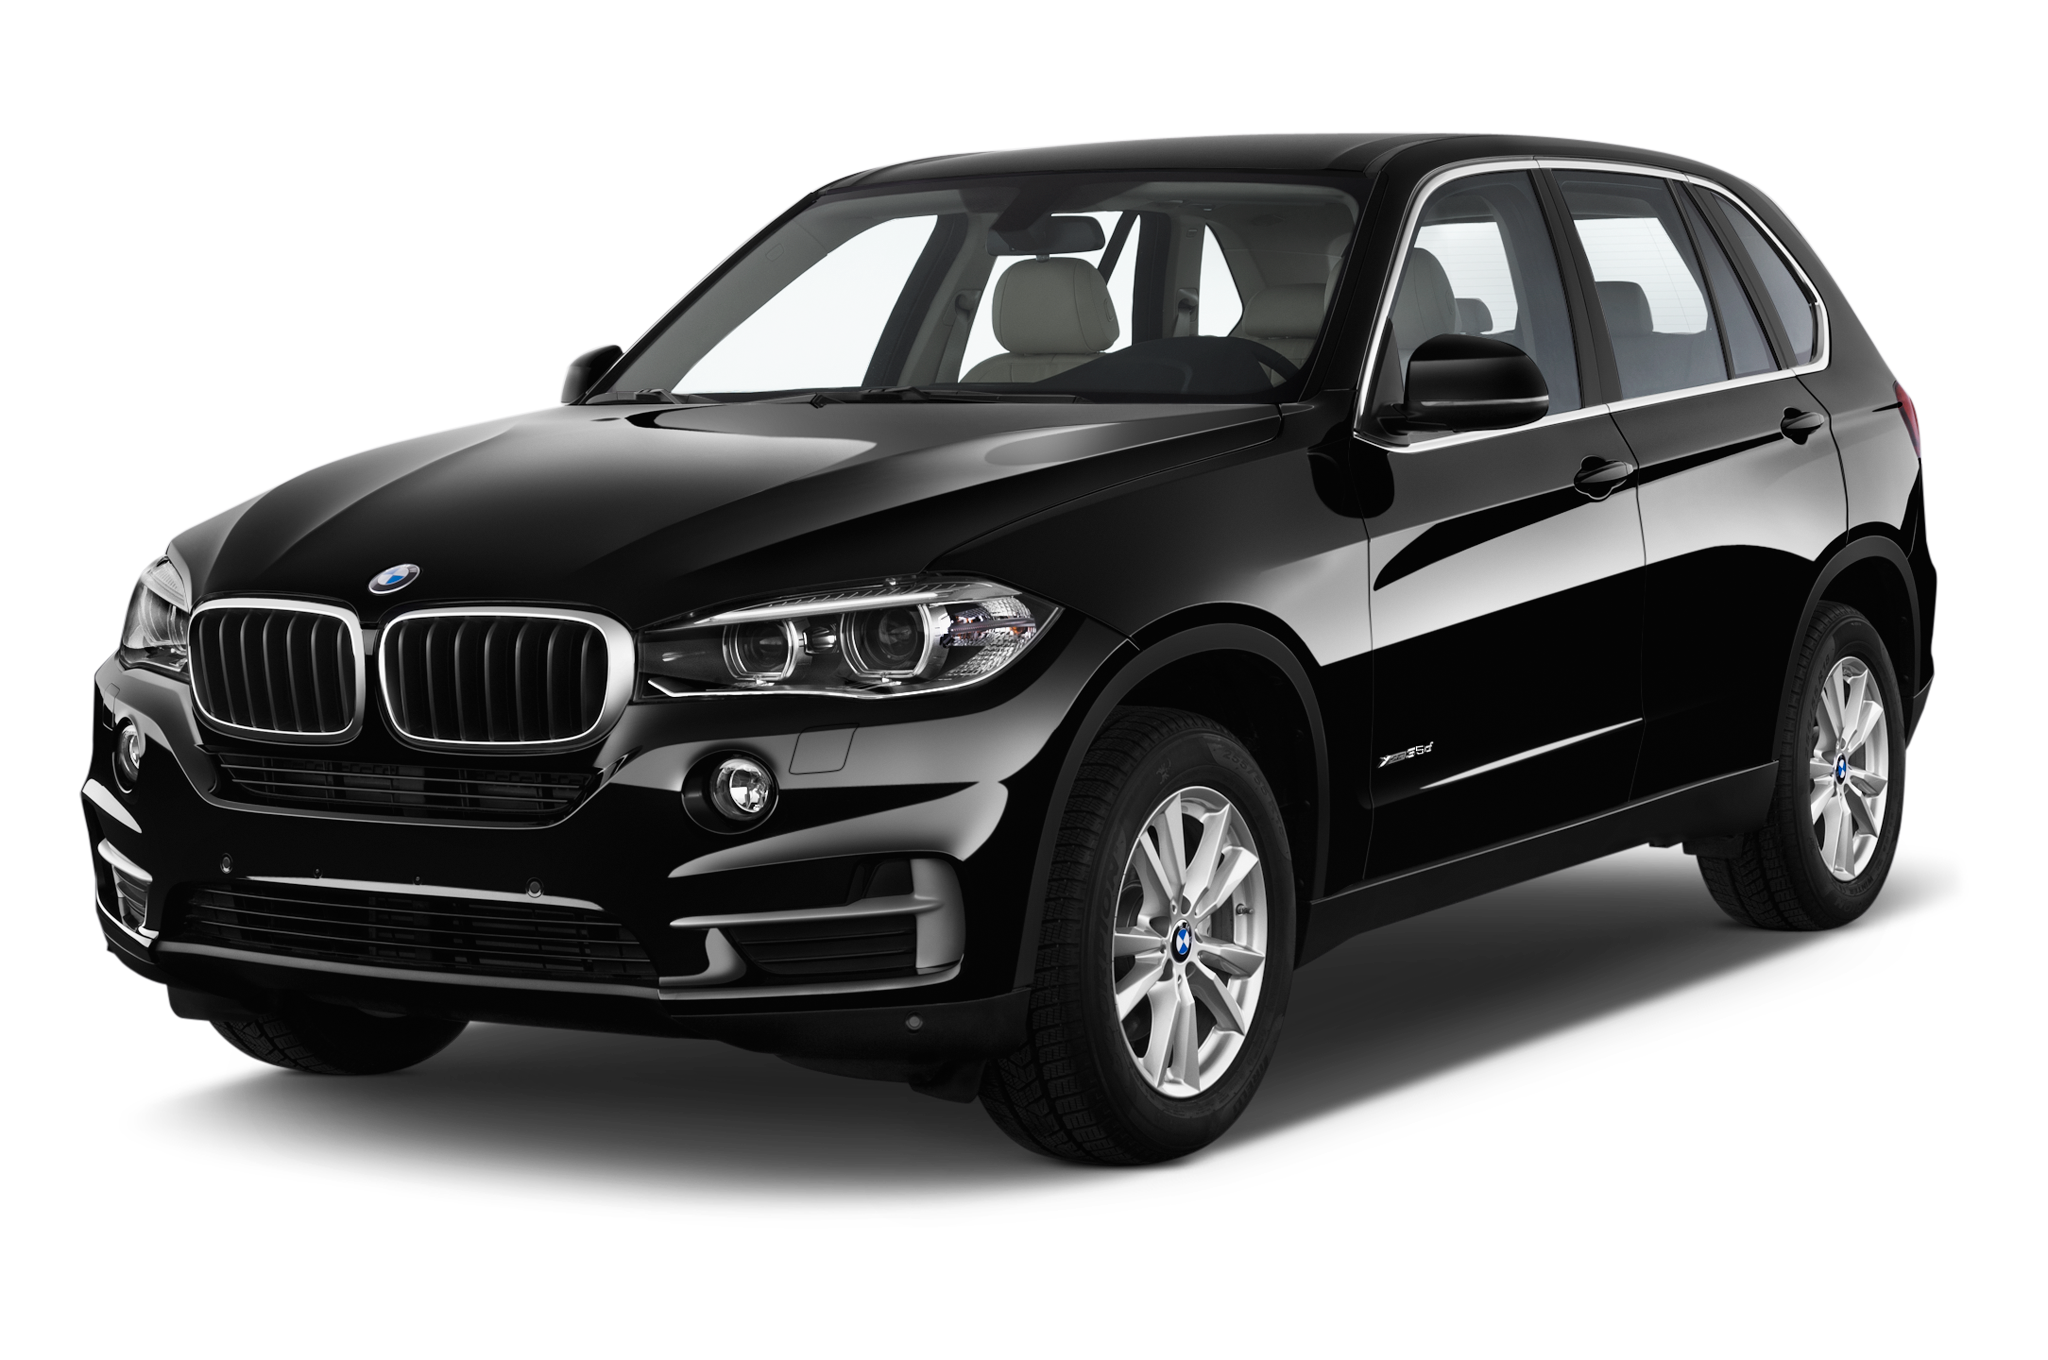 2018 bmw x5 emporium auto lease. Black Bedroom Furniture Sets. Home Design Ideas